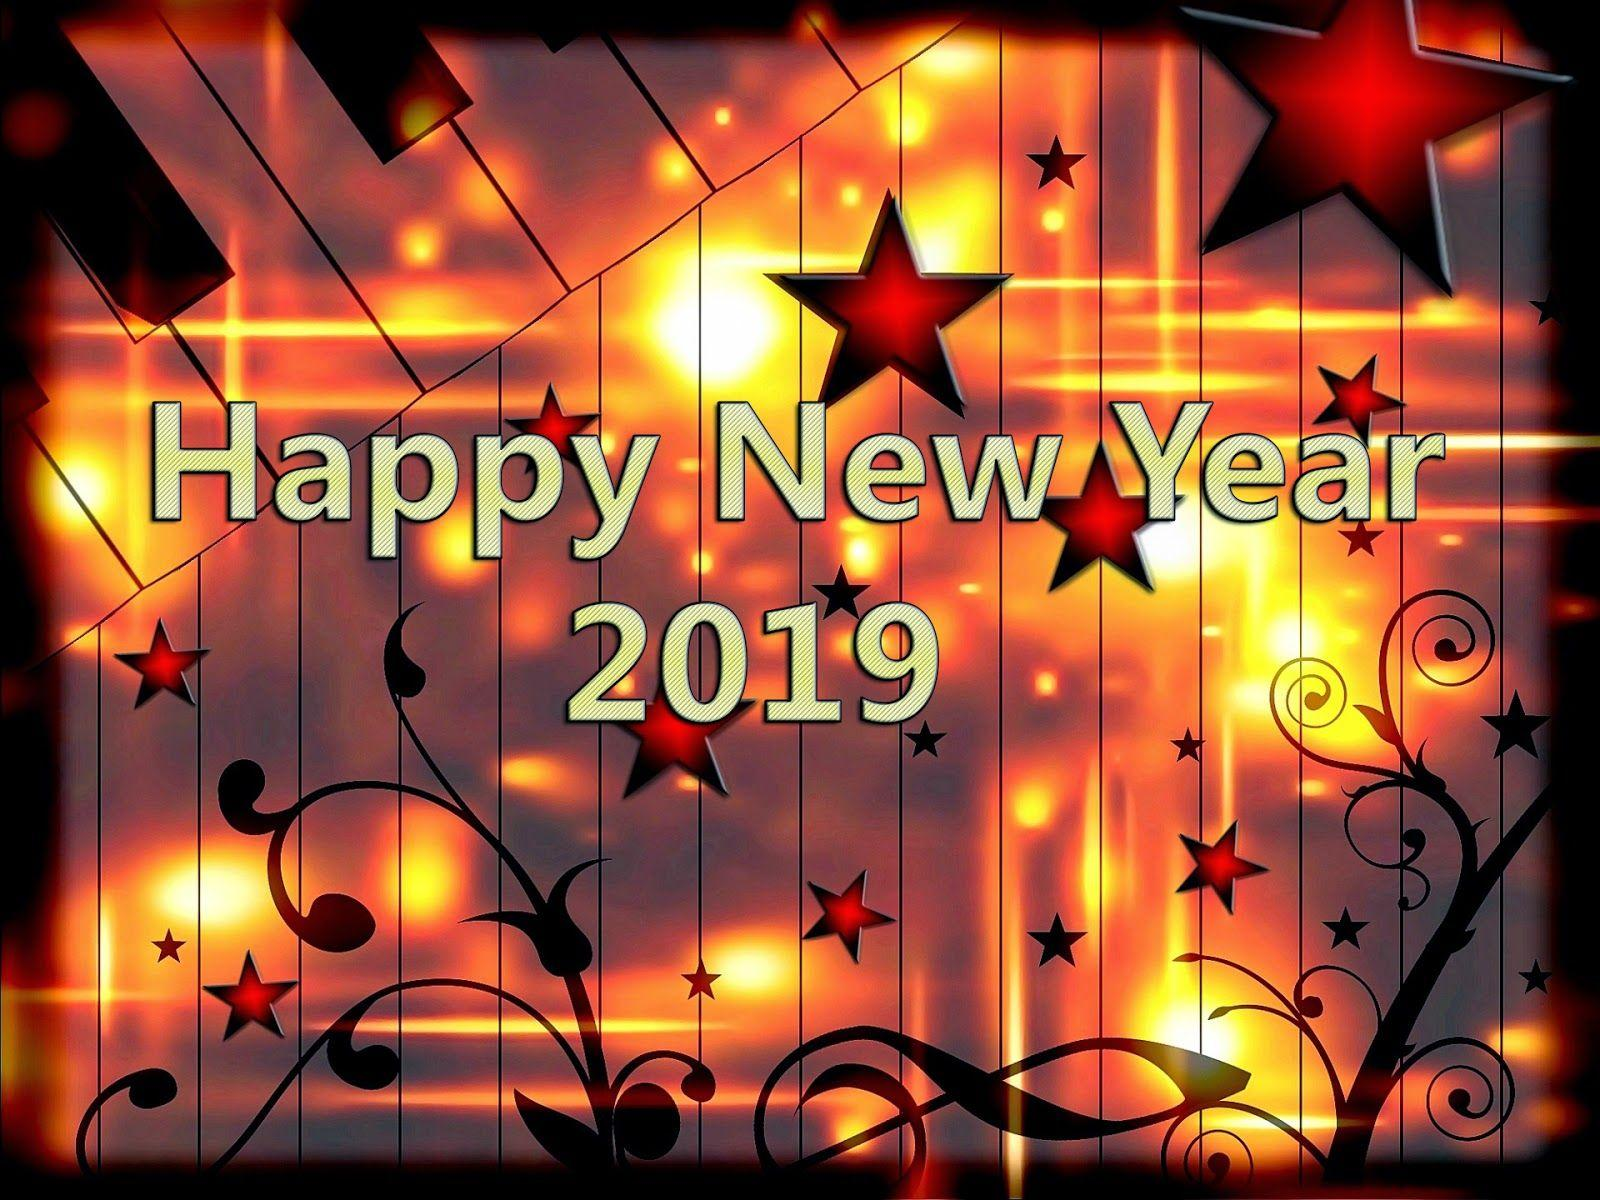 New Year Ka Wallpaper 2019